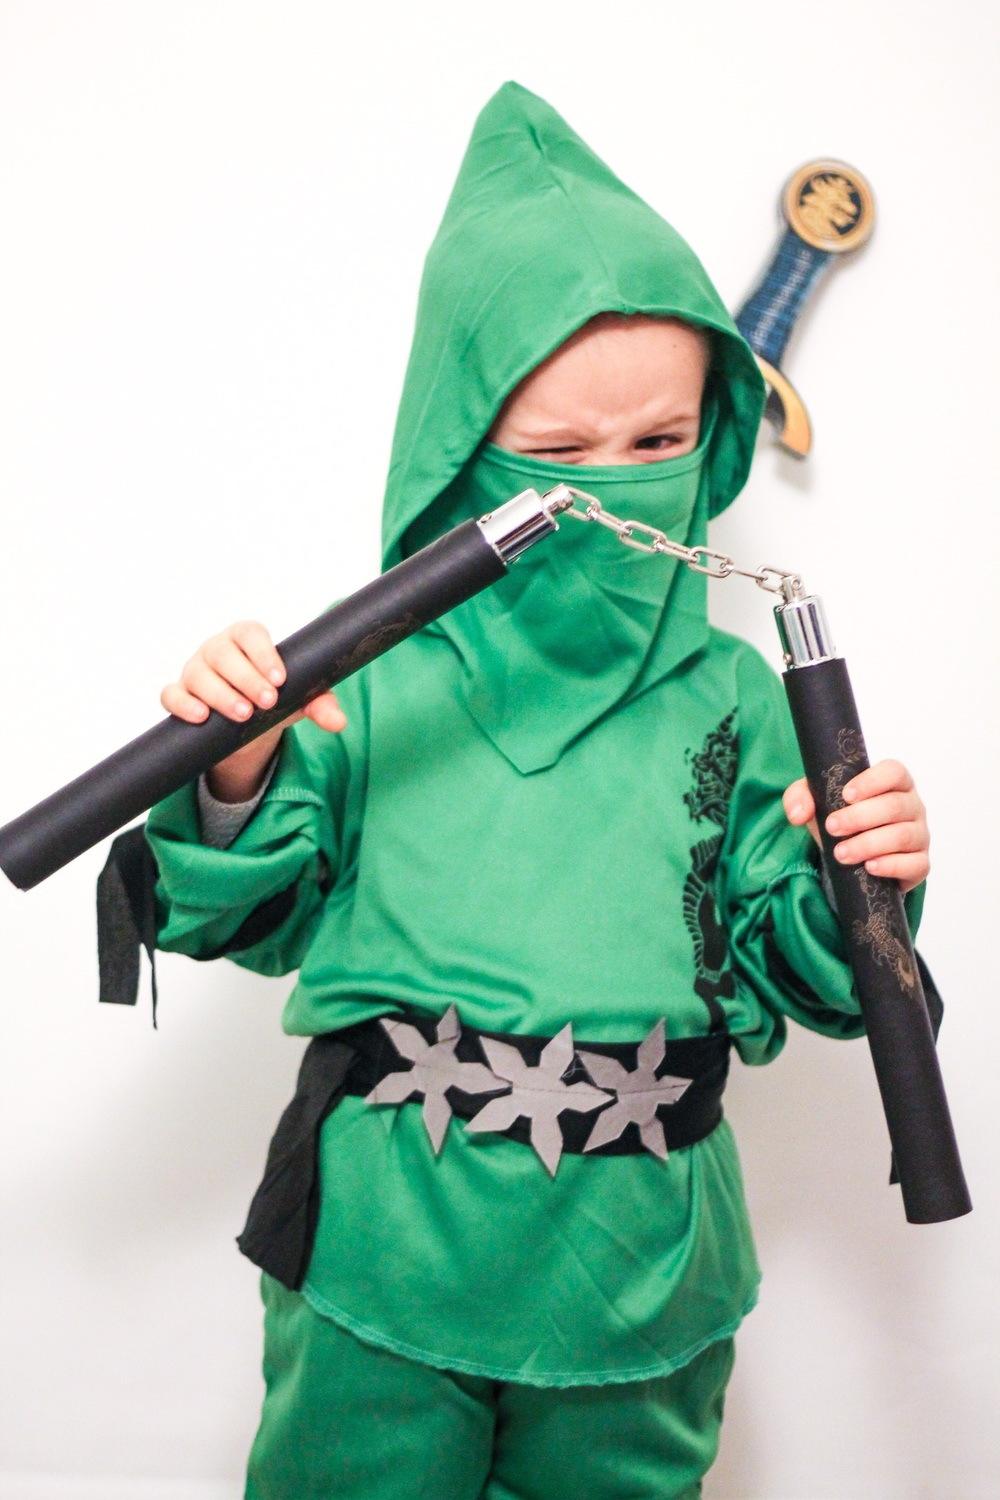 The kid is crazy about ninjas. For real. I wish I was better at sewing - then I'd make him a really cool Ninjago getup. Oh, and for those of you wondering; the nunchuks are soft foam so no worries.